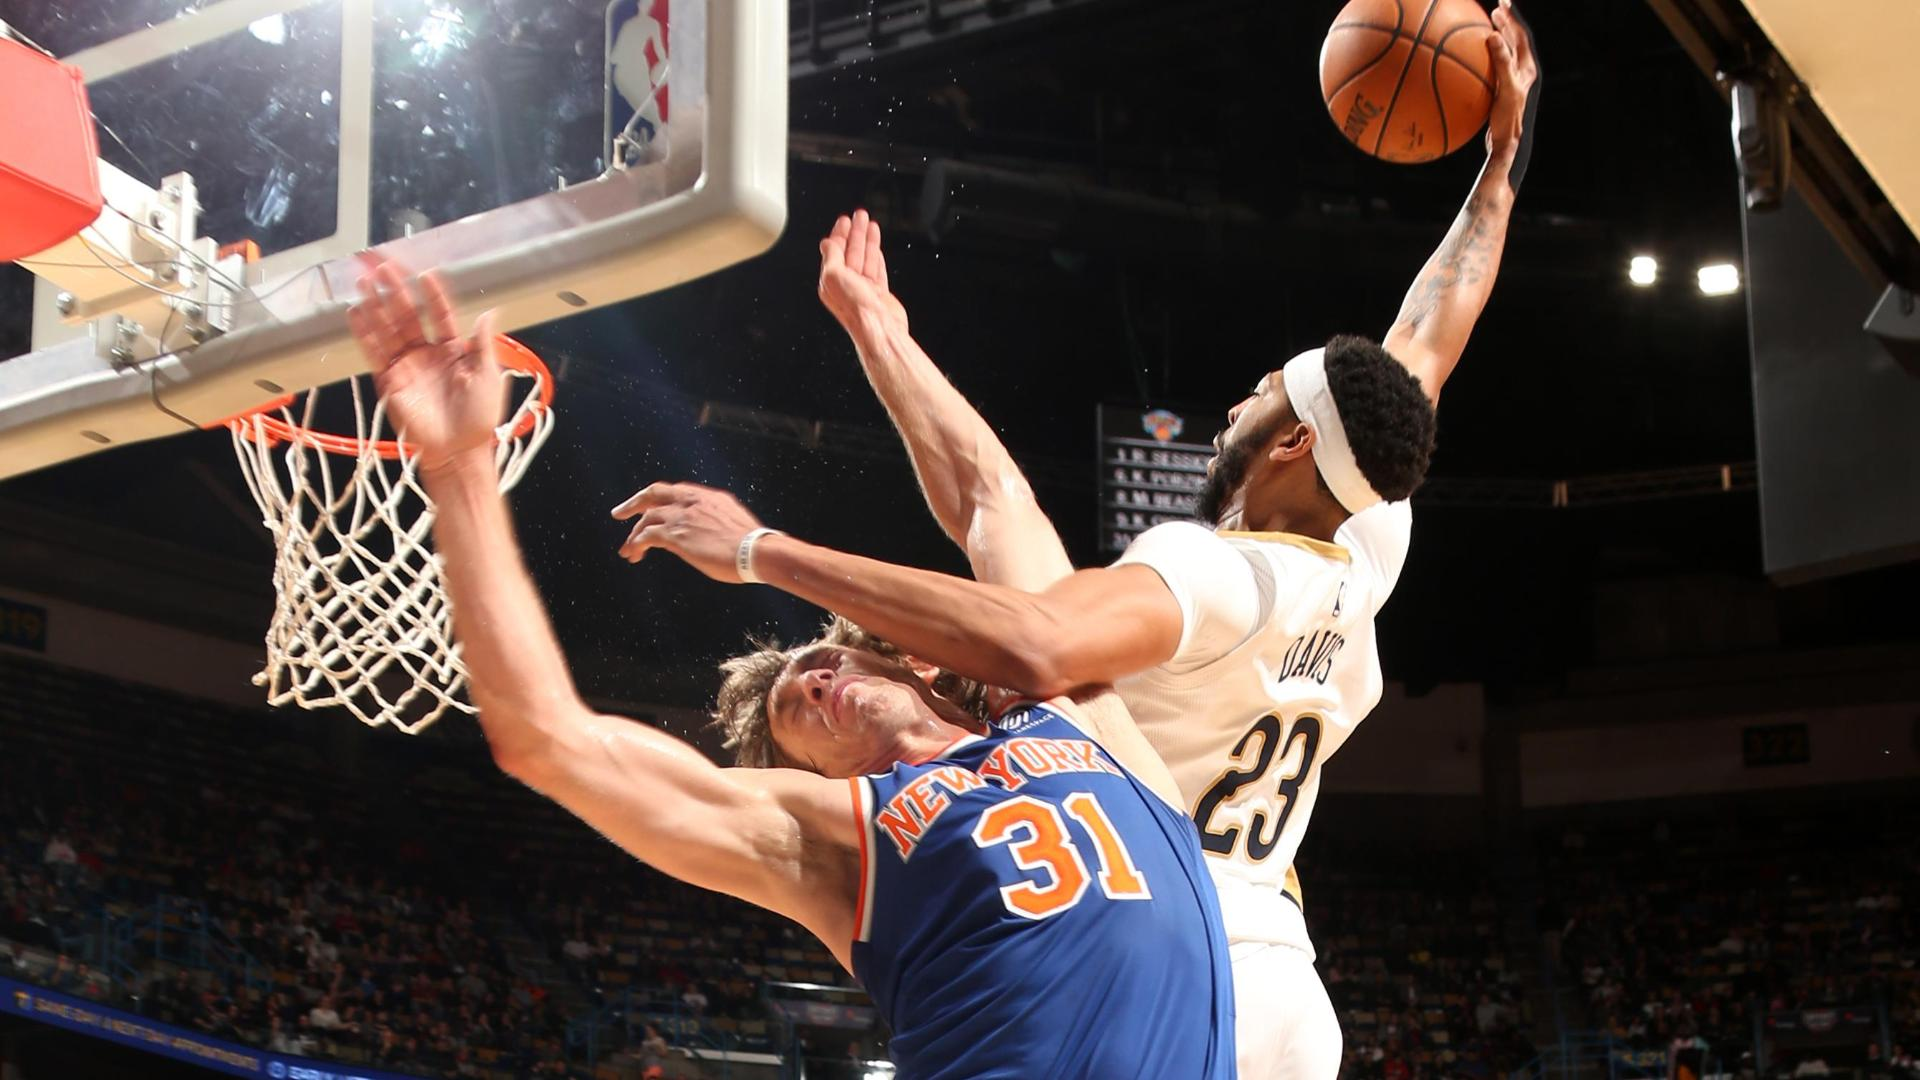 http://a.espncdn.com/media/motion/2017/1231/dm_171230_nba_pelicans_davis_dunk163/dm_171230_nba_pelicans_davis_dunk163.jpg